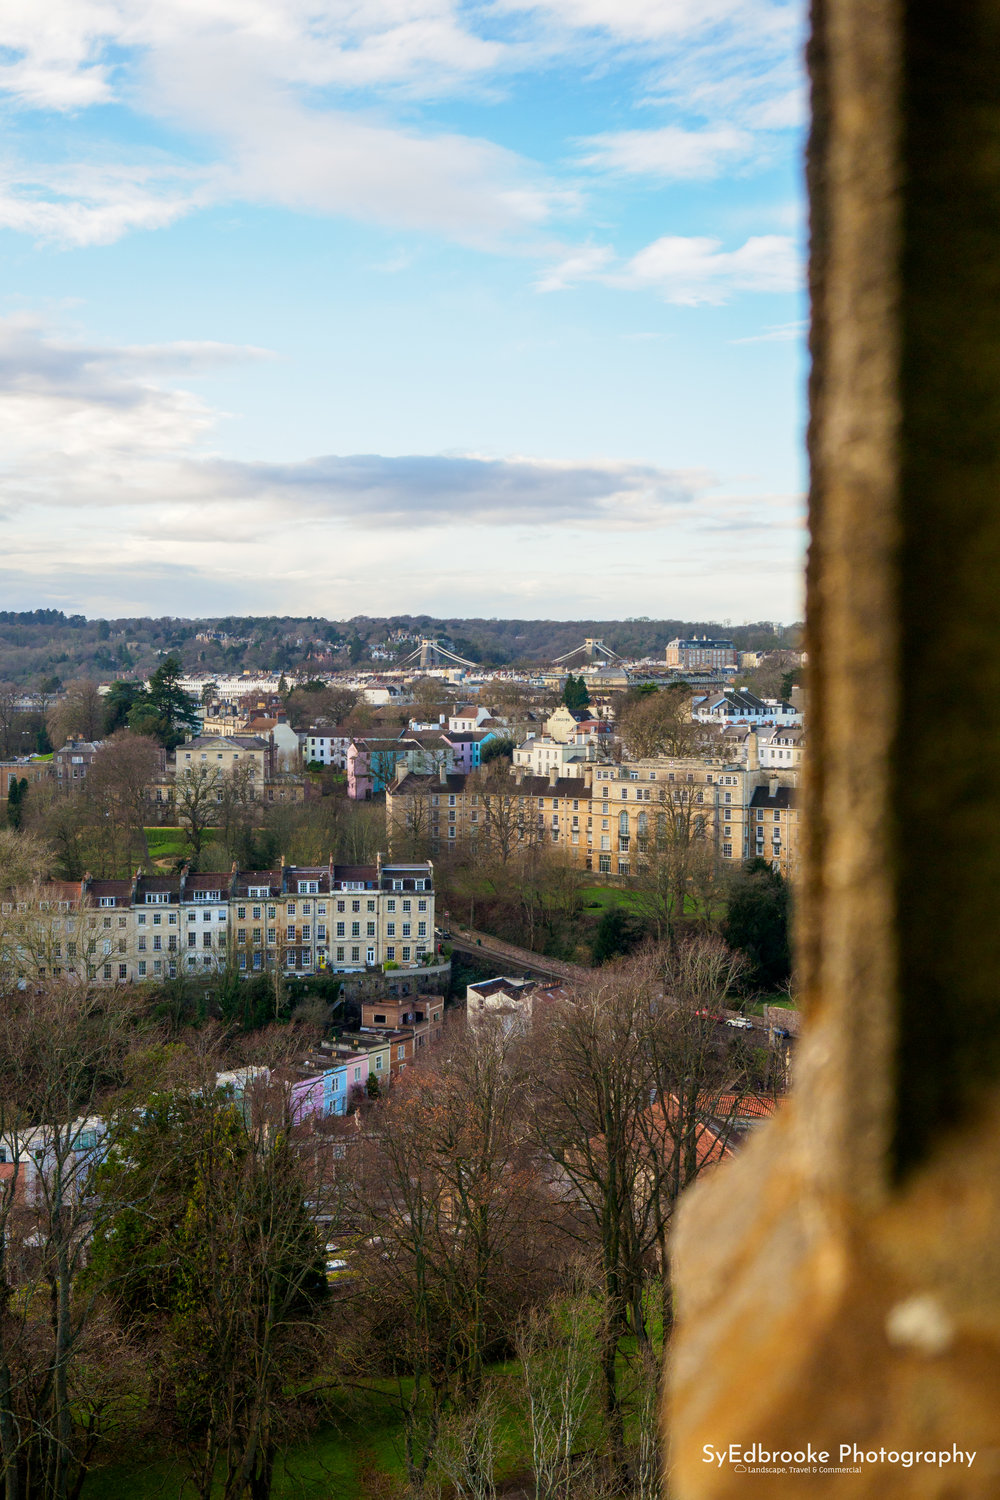 A view of Clifton from Cabot Tower. 40mm, ISO 200, f 2.8, 1/1250